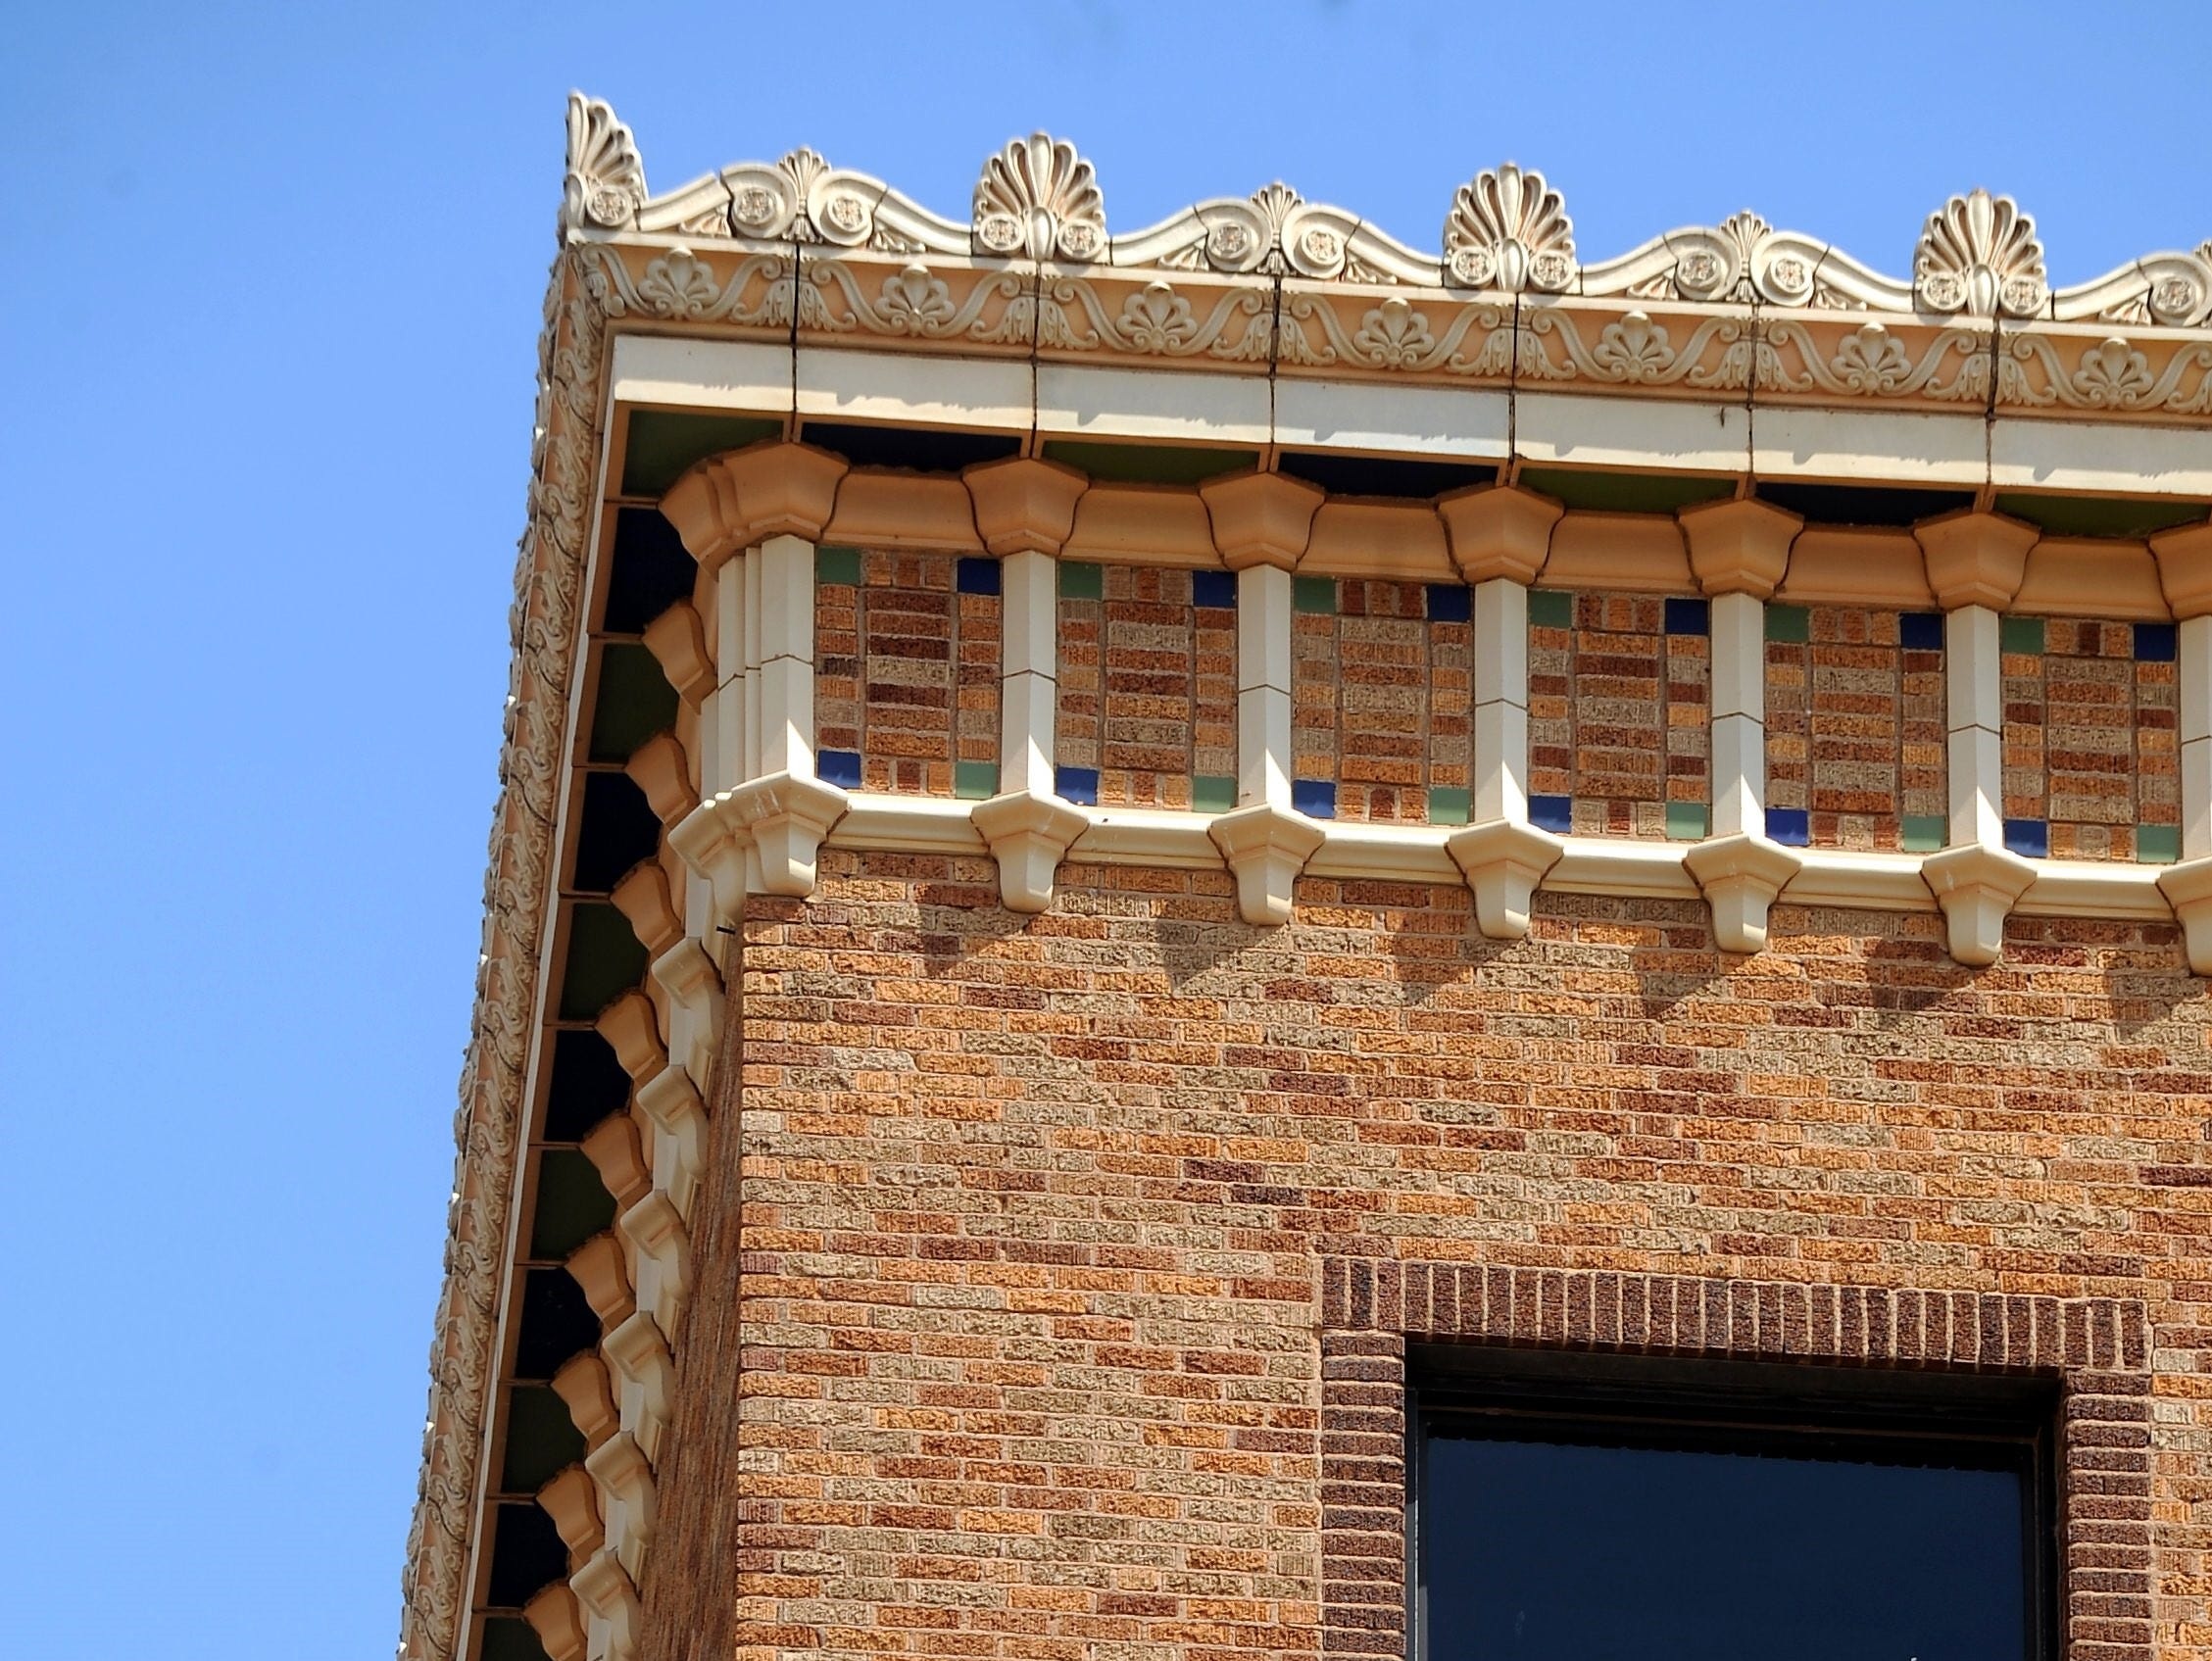 Detail on the Compass Bank building at North Third and Cypress, originally known as the Mims Building.